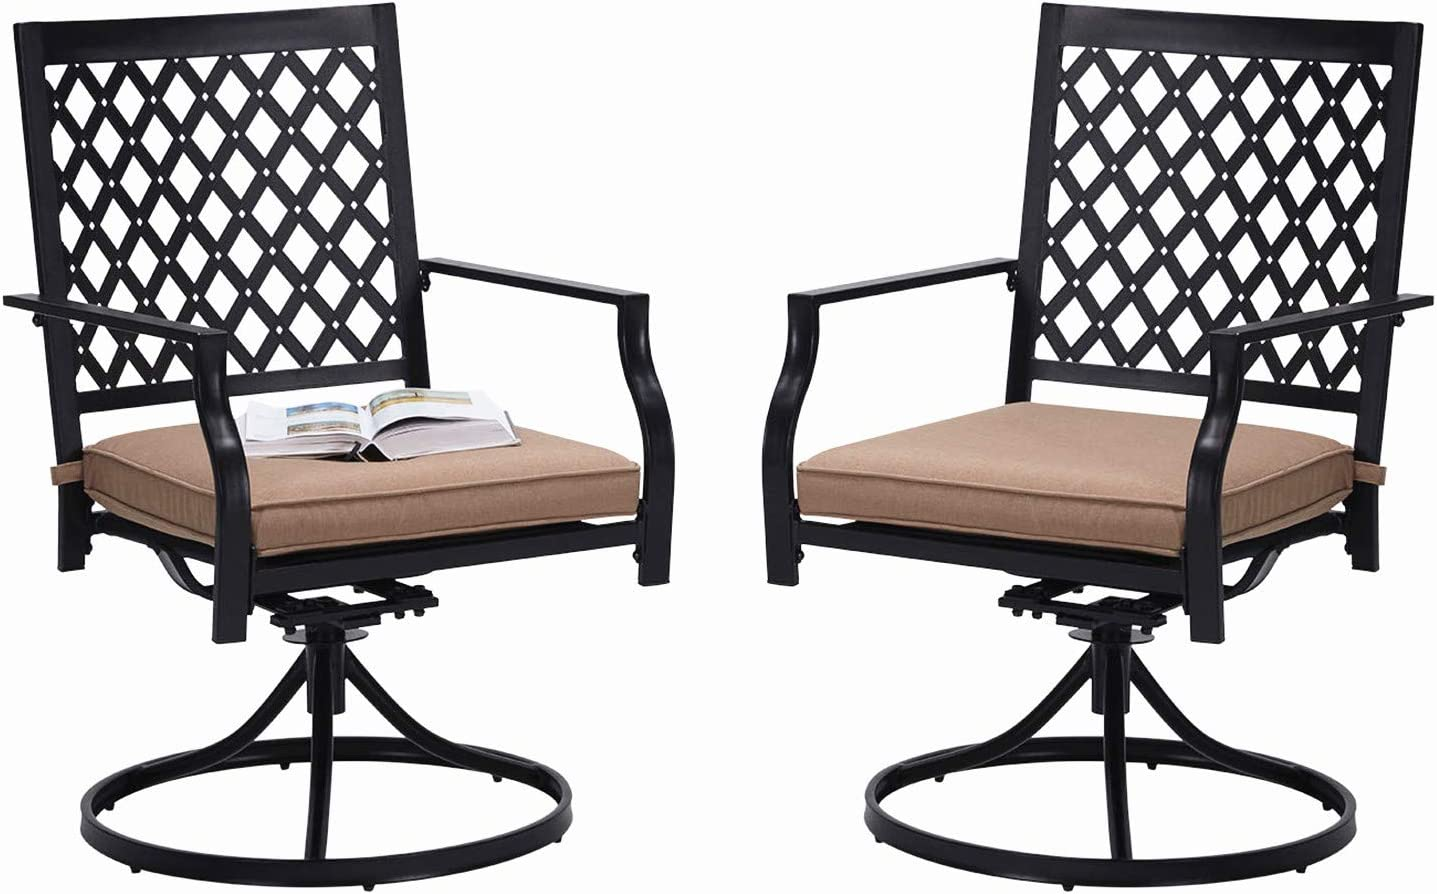 Outdoor Swivel Dining Chairs Patio Furniture Chairs Set with Cushion for  Garden Backyard